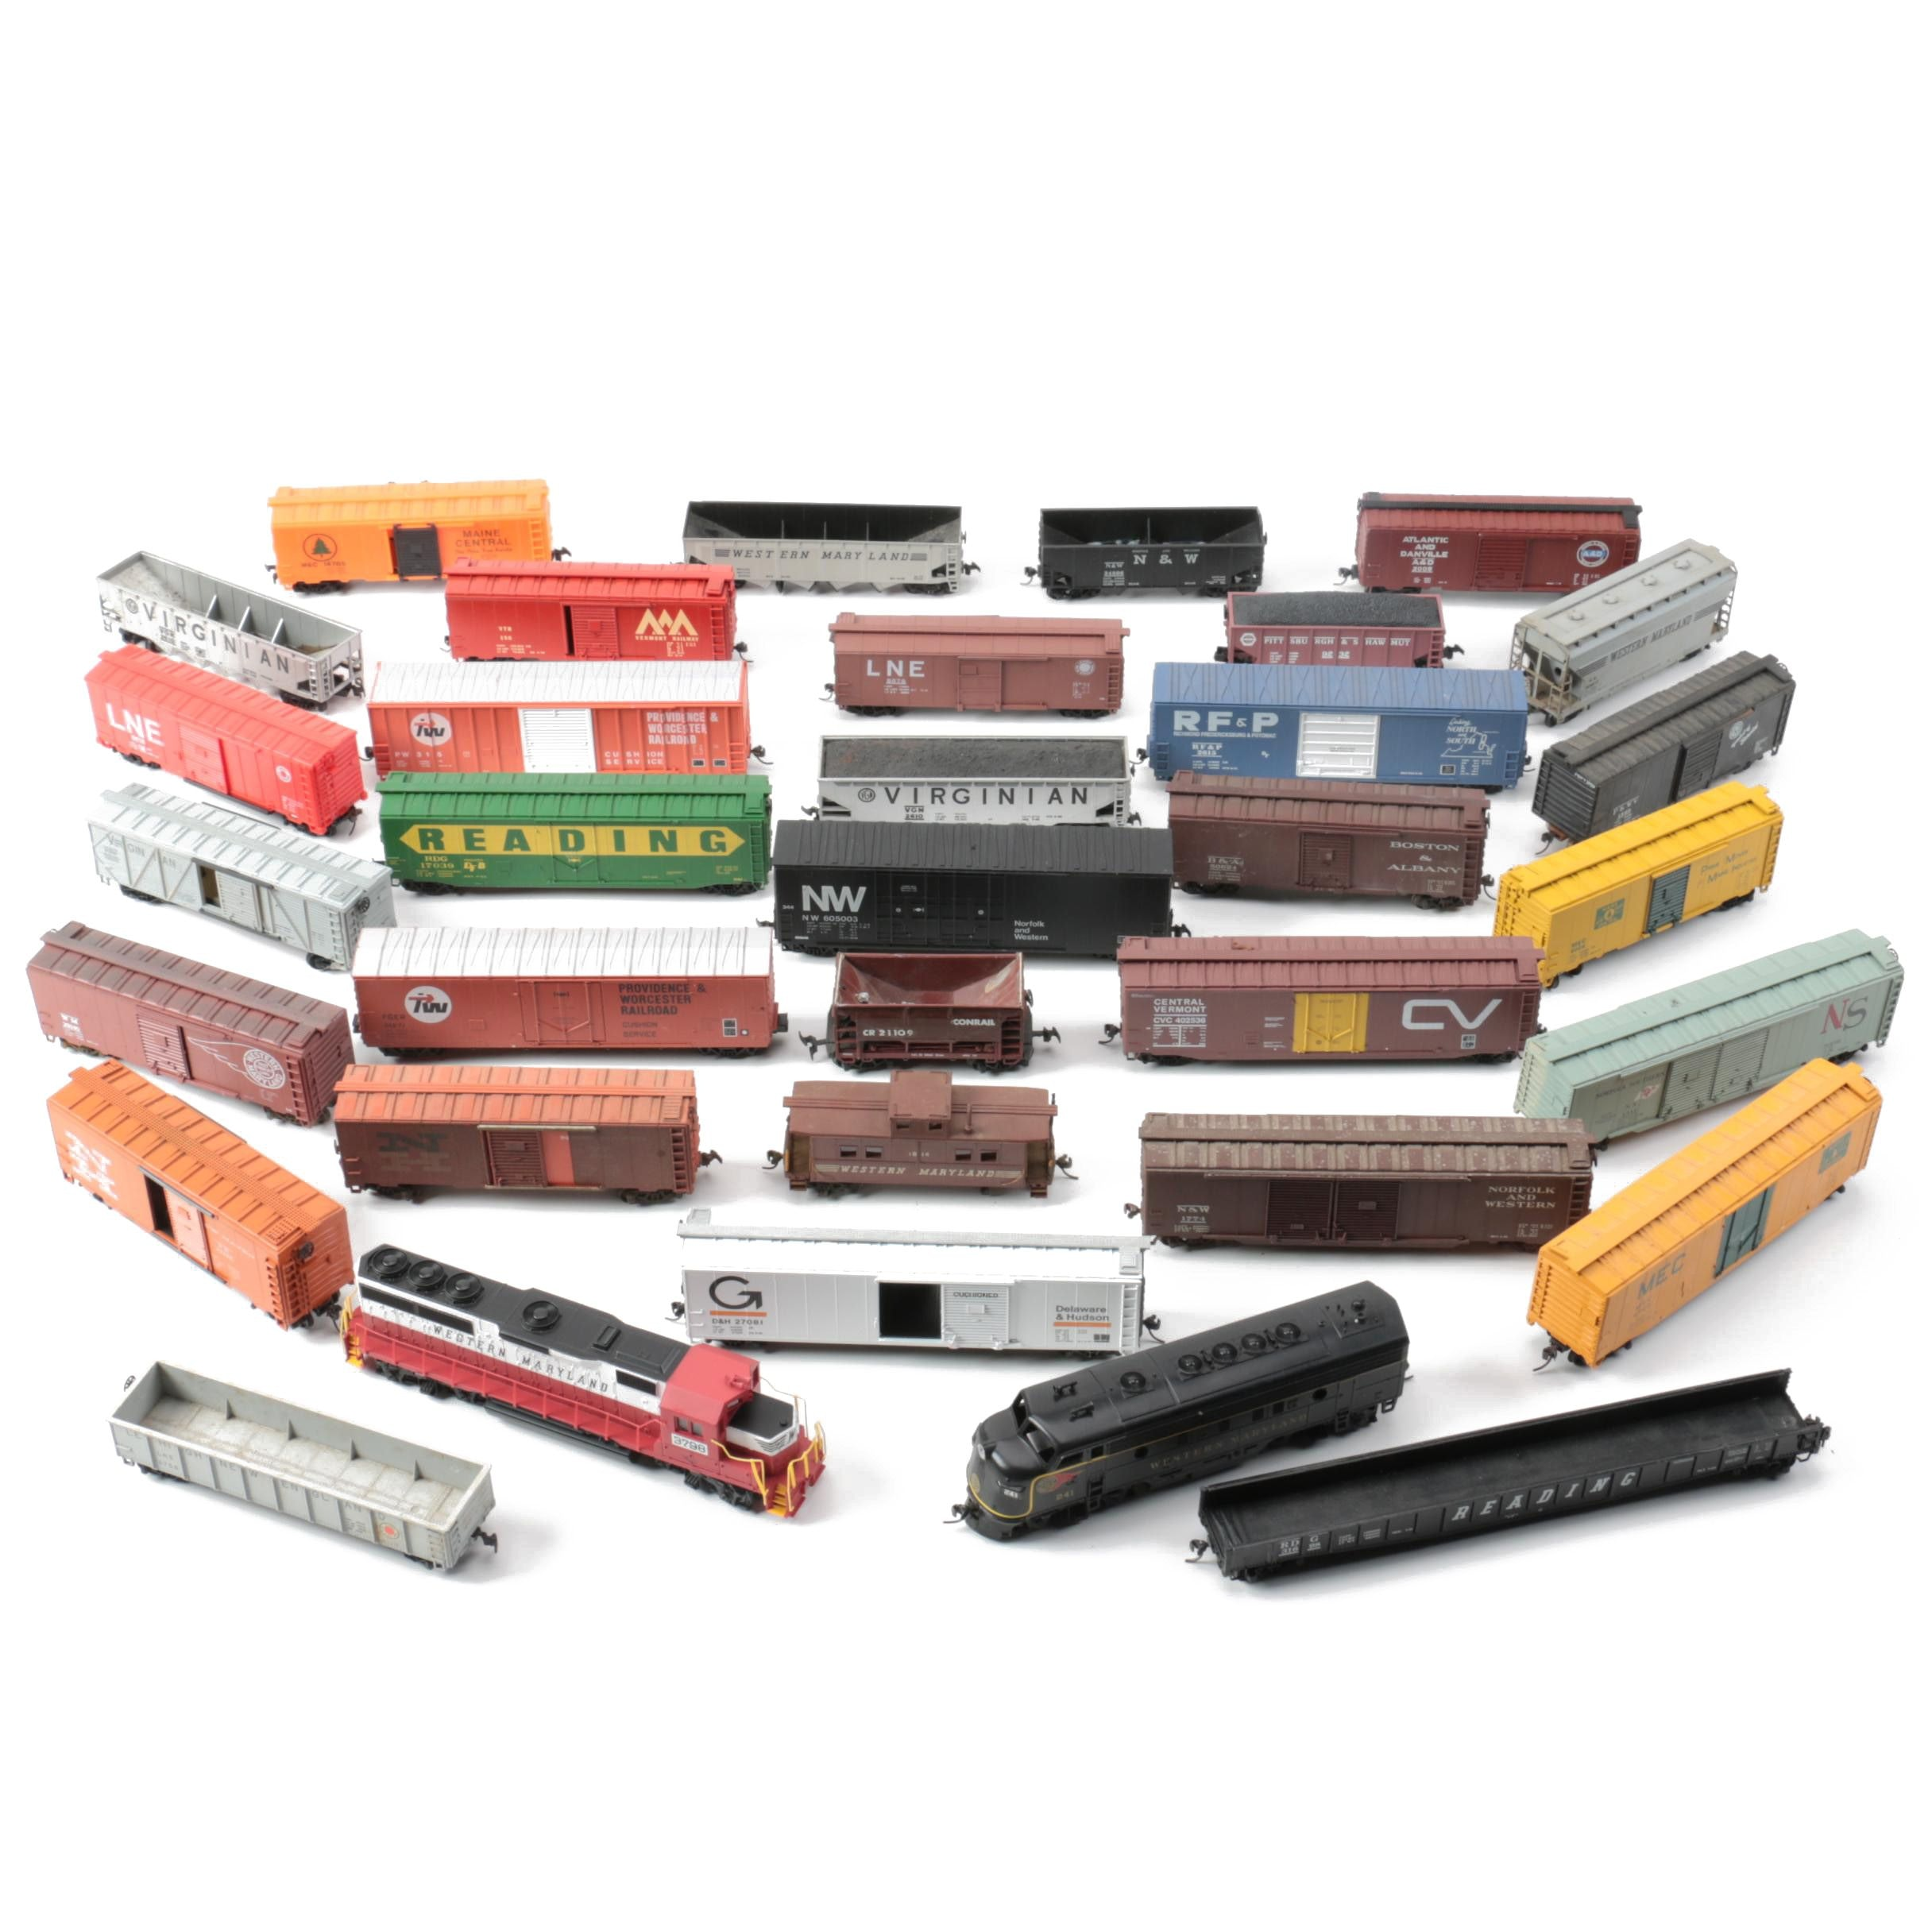 HO Scale Train Cars Including Western Maryland Diesel Engines